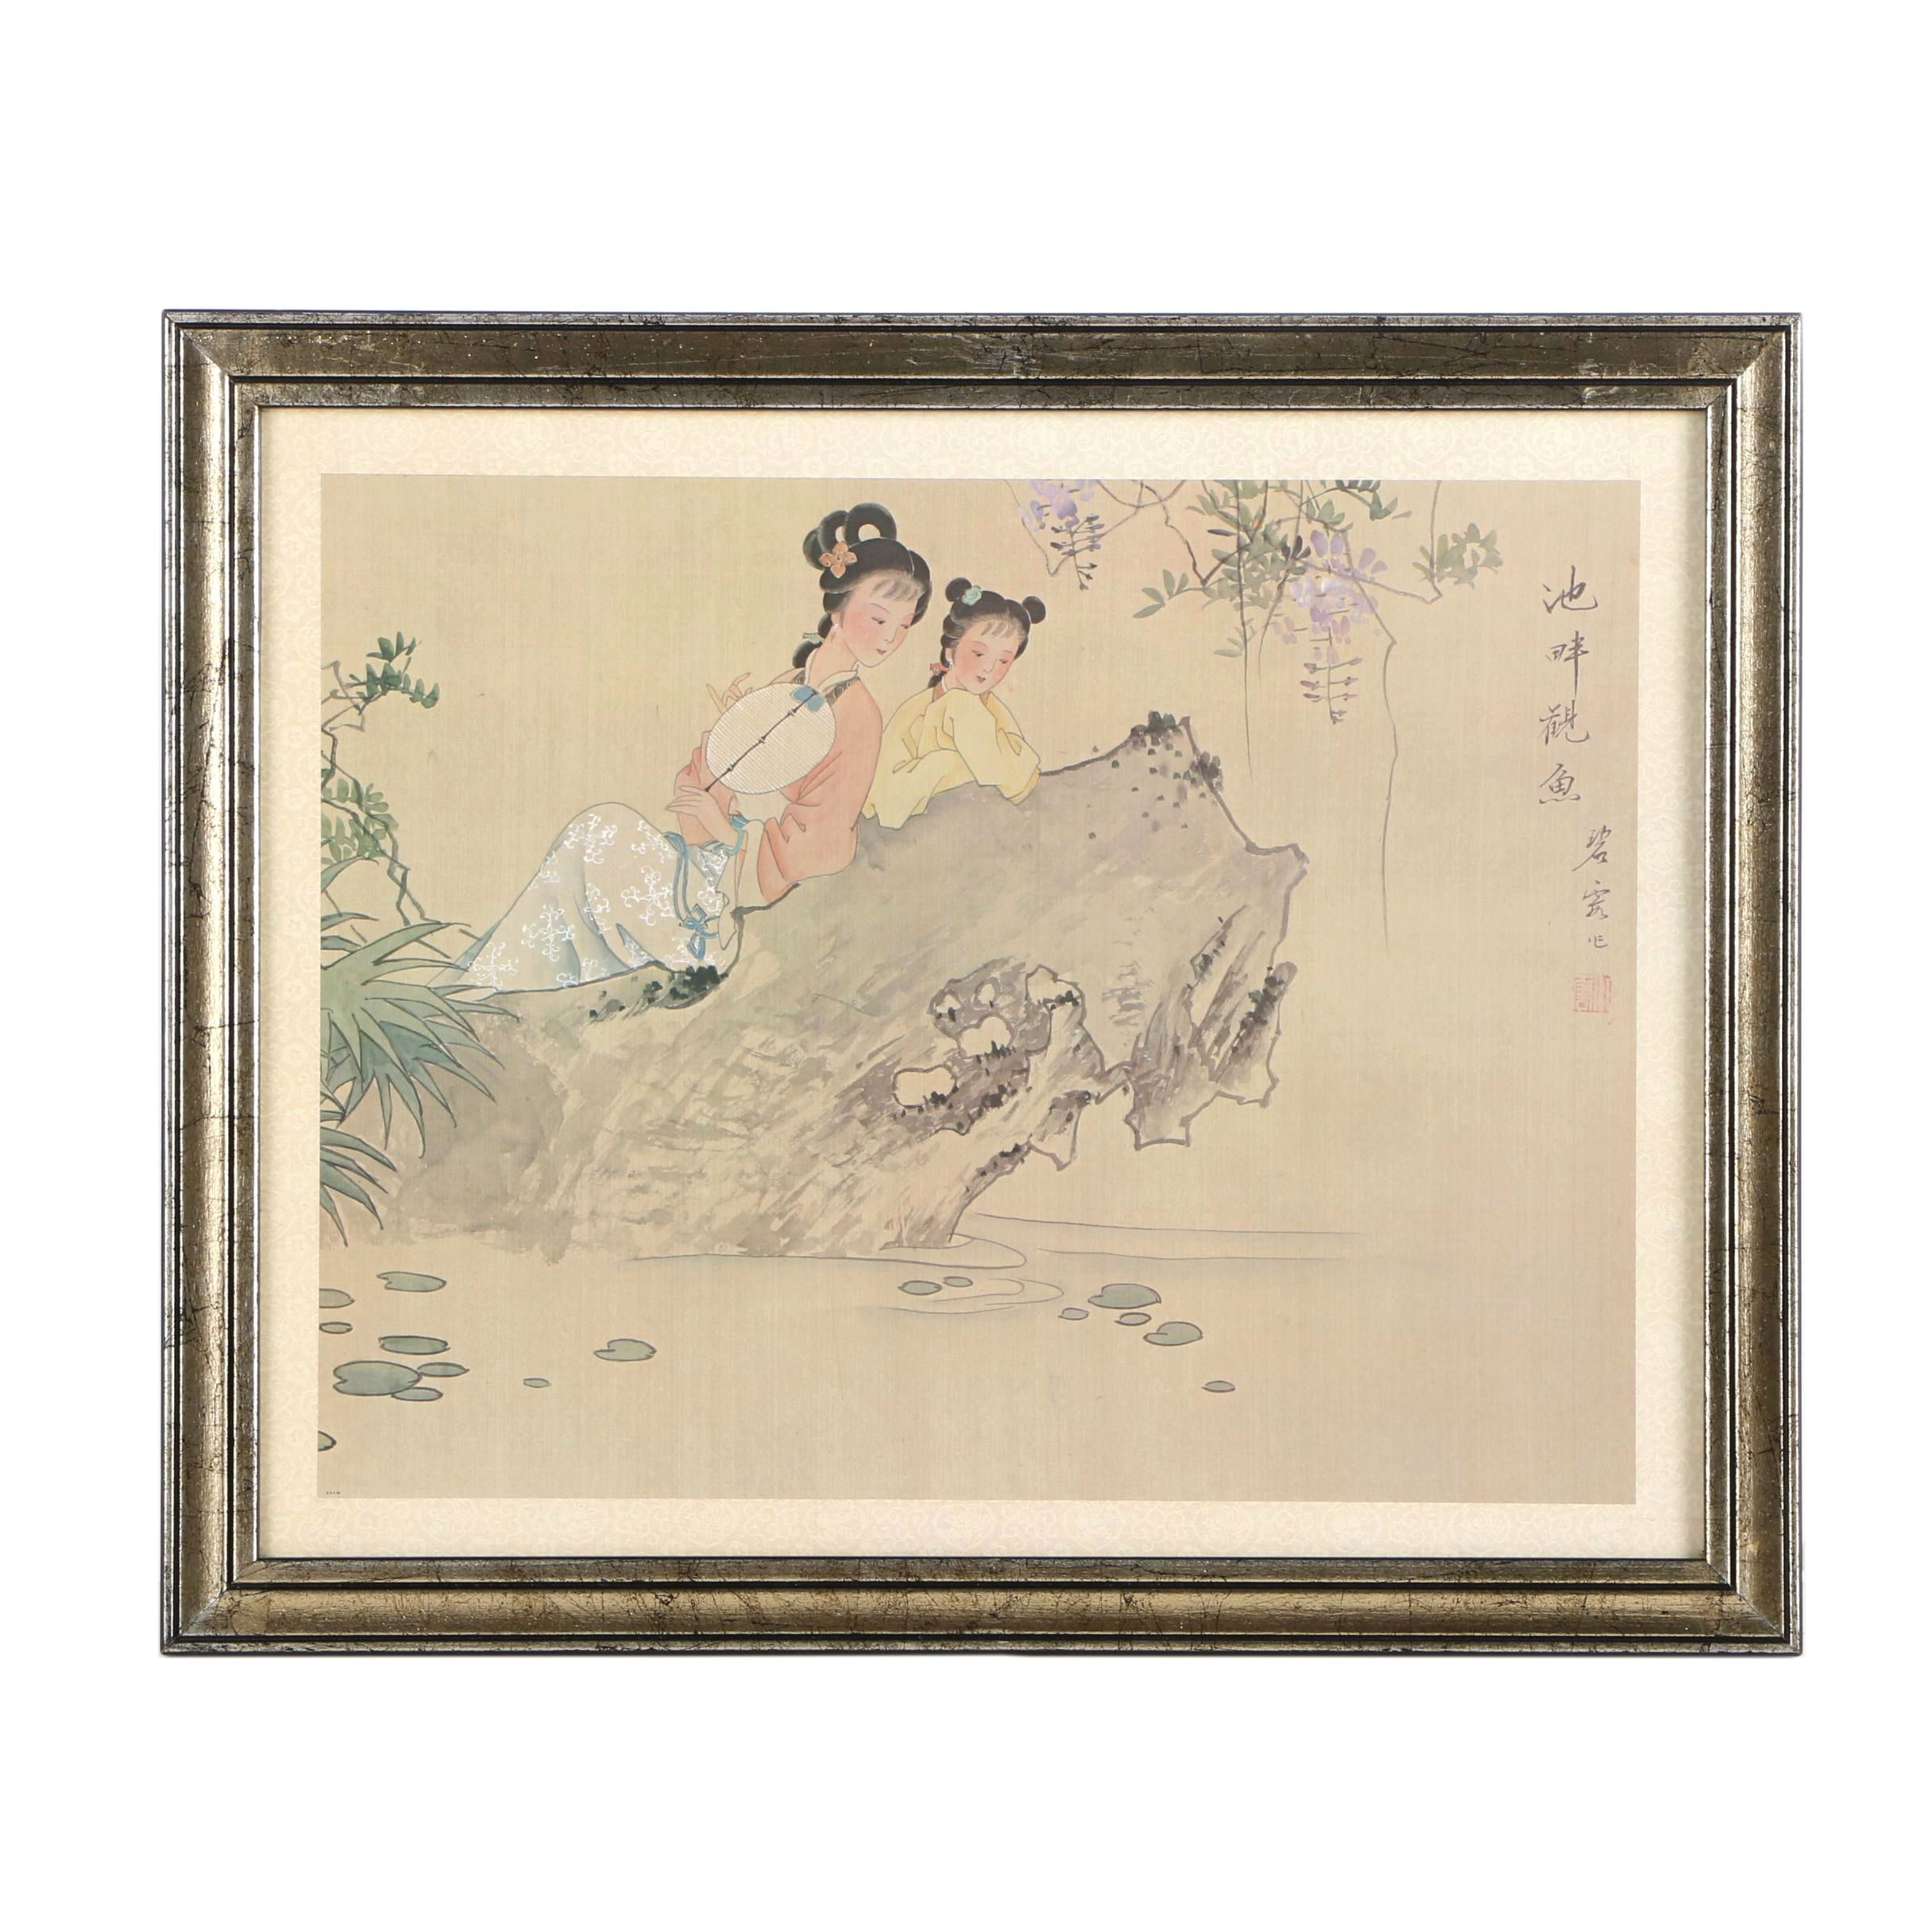 Offset Lithograph on Silk After Chinese Painting